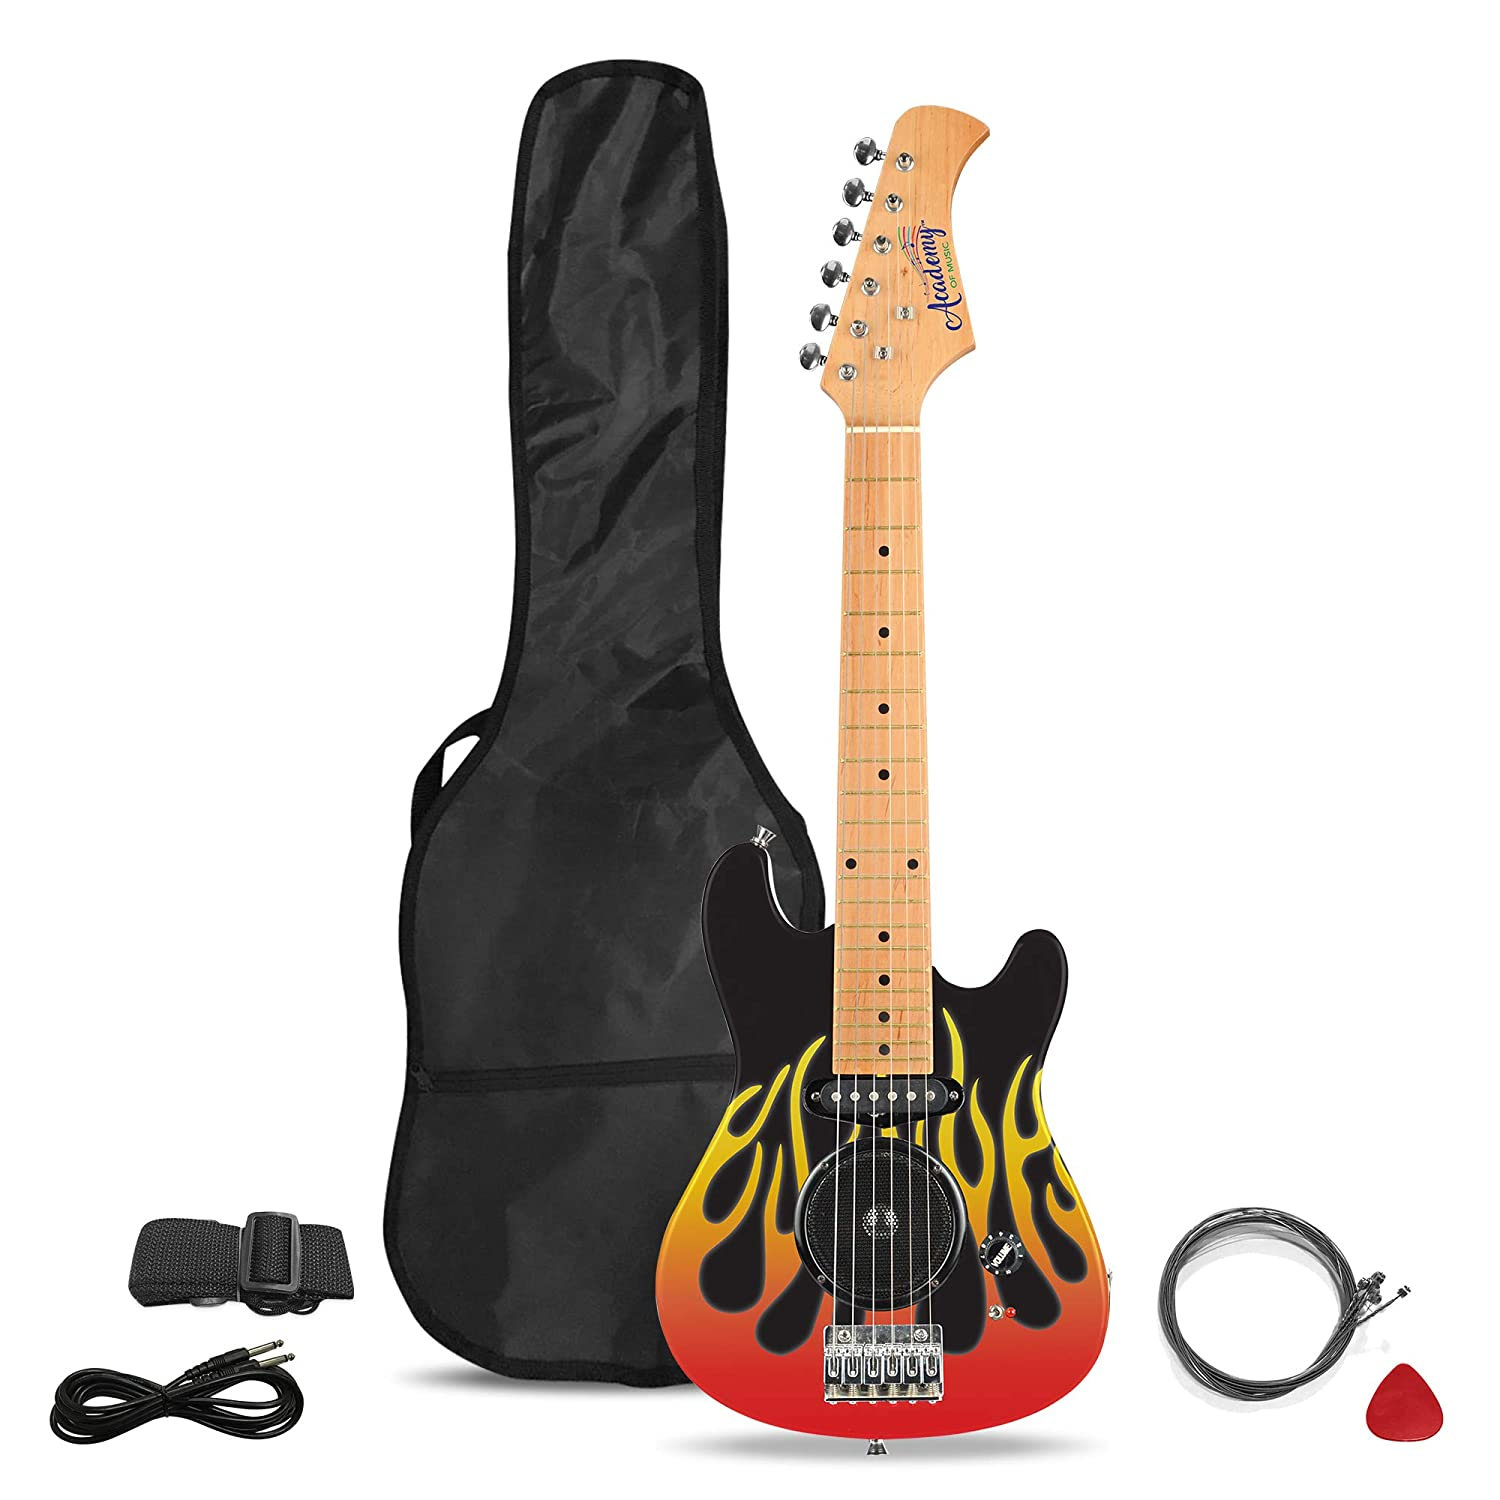 Academy of Music TY6016B Kids Electric Guitar for Beginners with Built-in Amp and 6 Steel Strings, Flames Toyrific